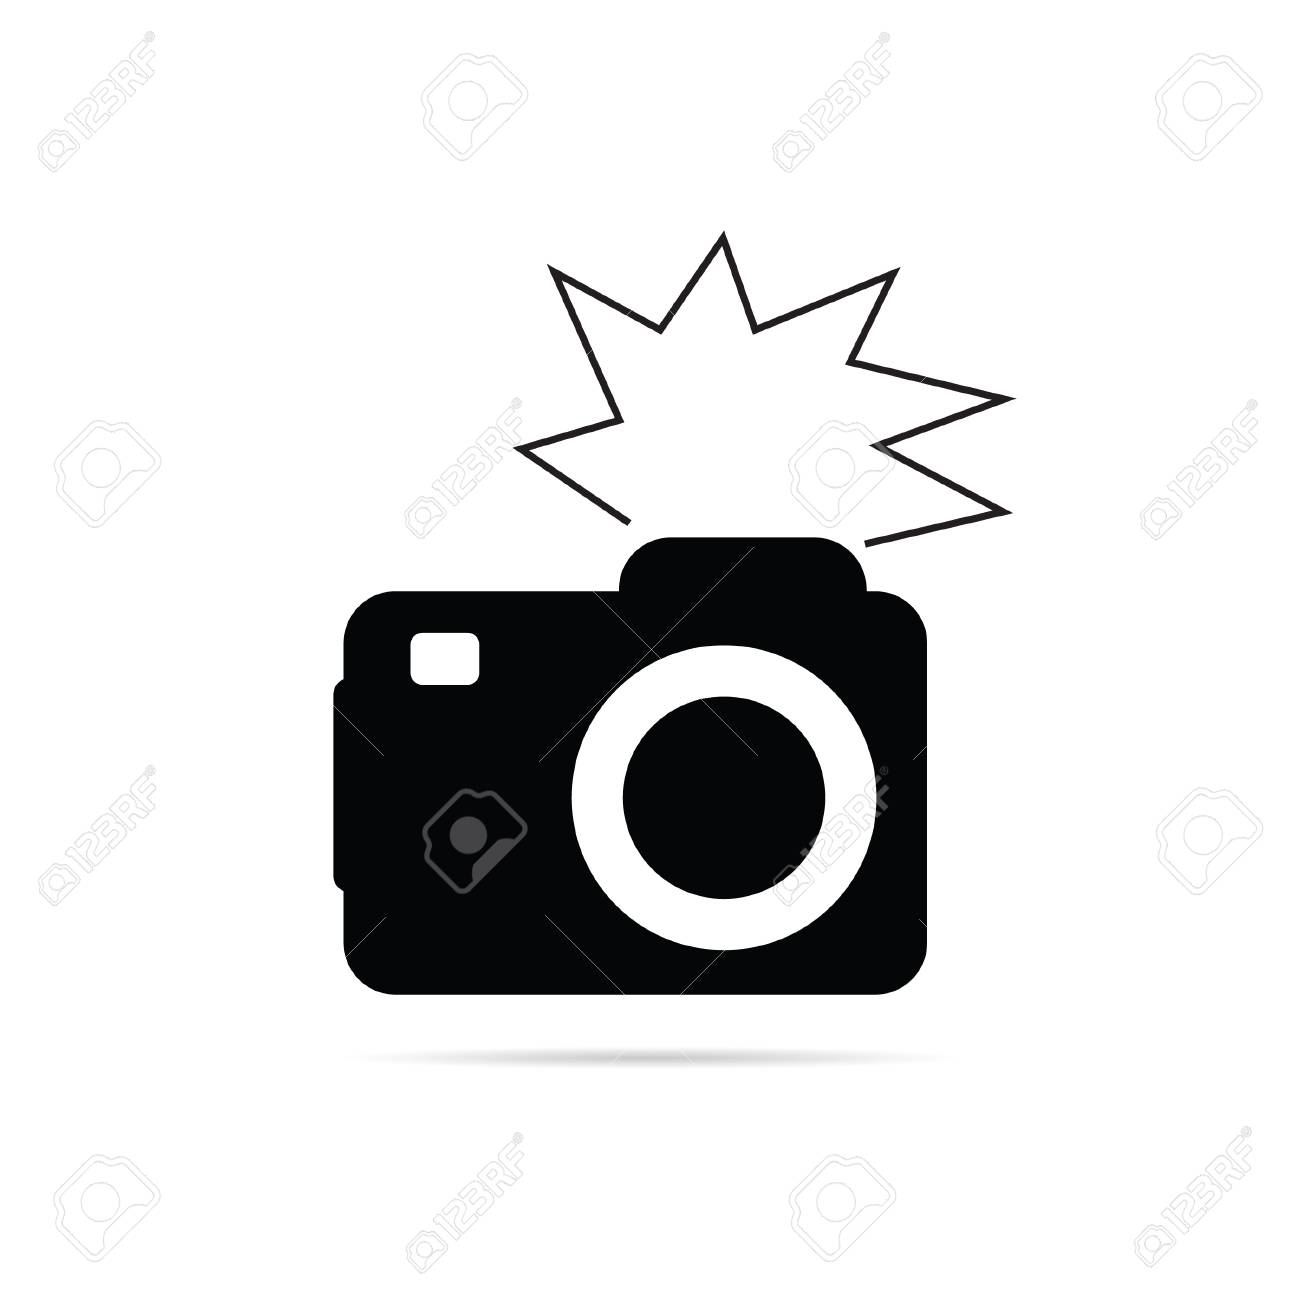 Camera Flash Black And White Vector Illustration Royalty Free Cliparts Vectors And Stock Illustration Image 34530952